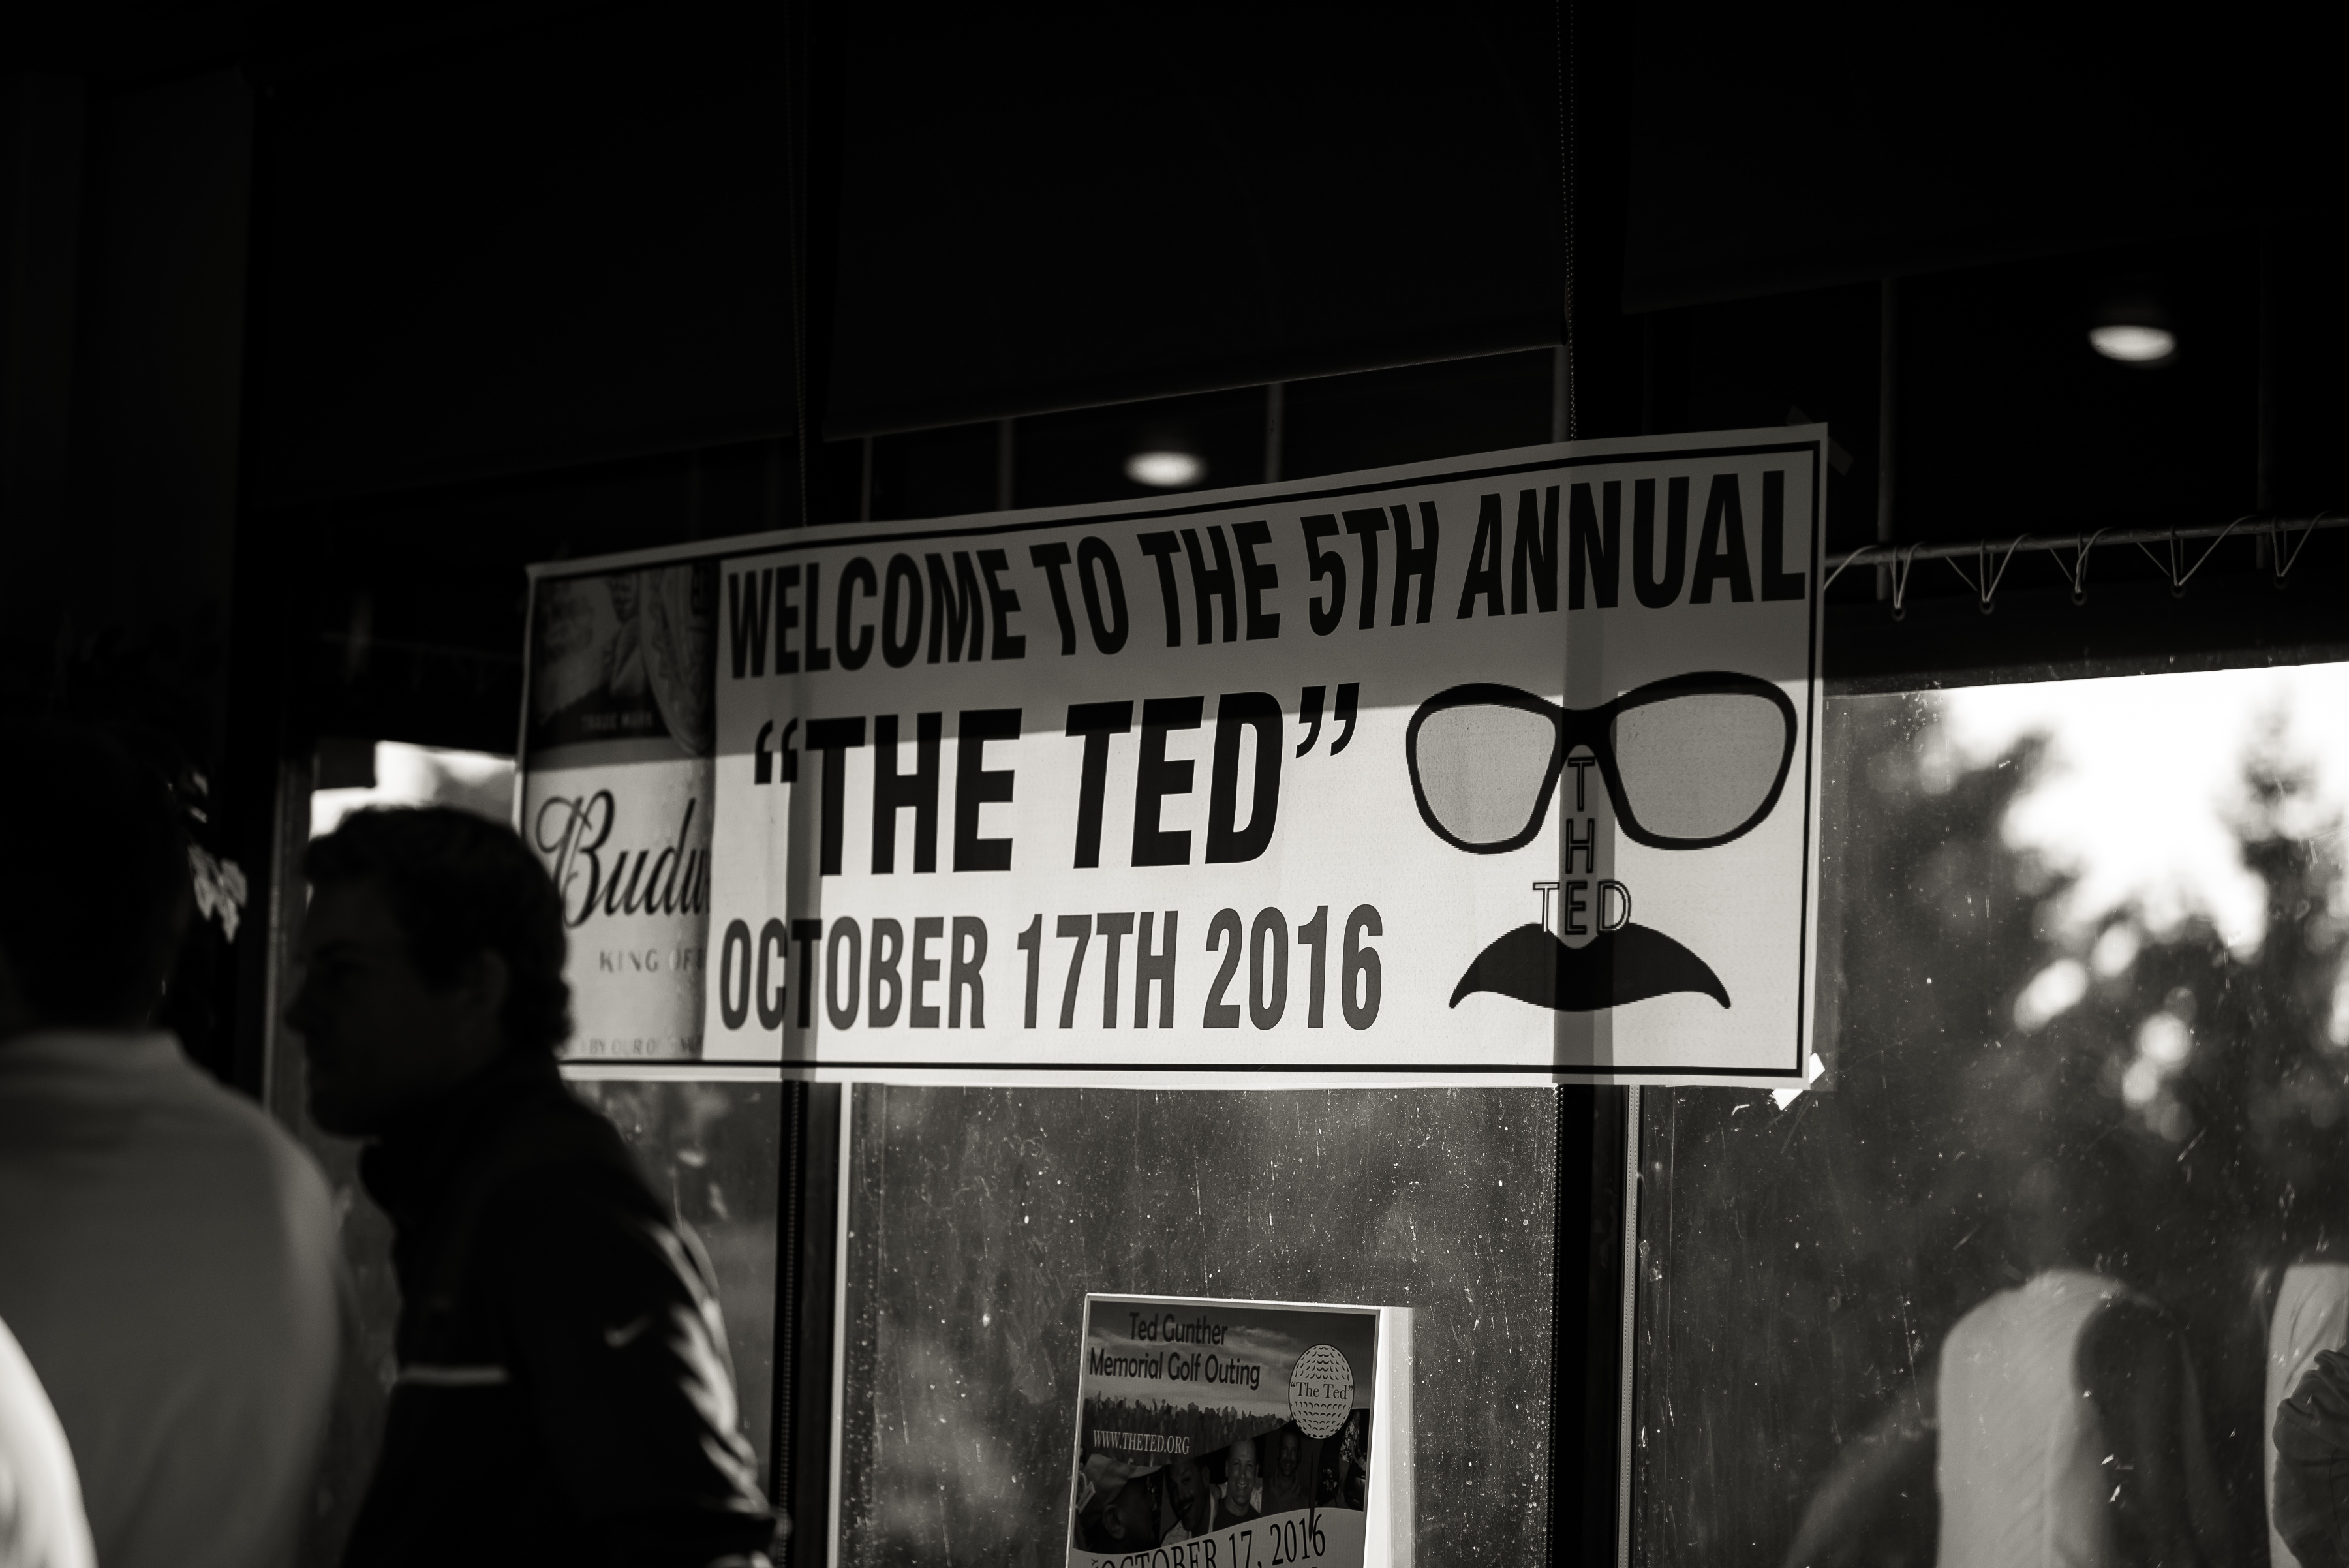 ted242